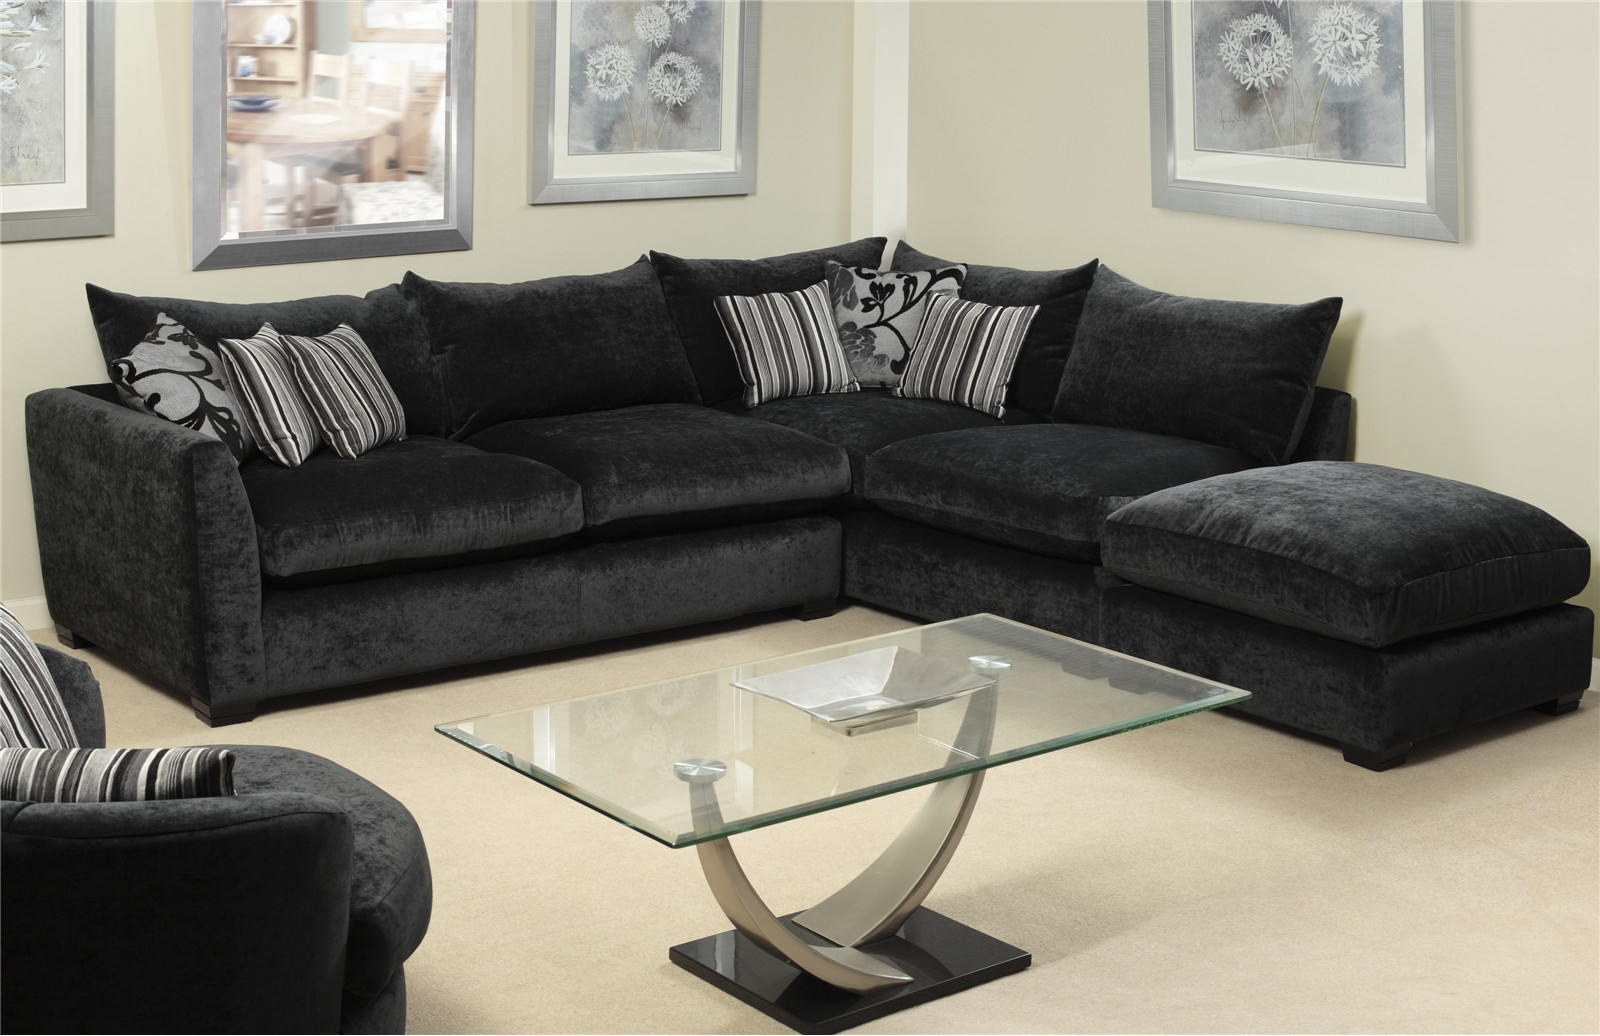 Charlie Sofa Collection Keens Furniture